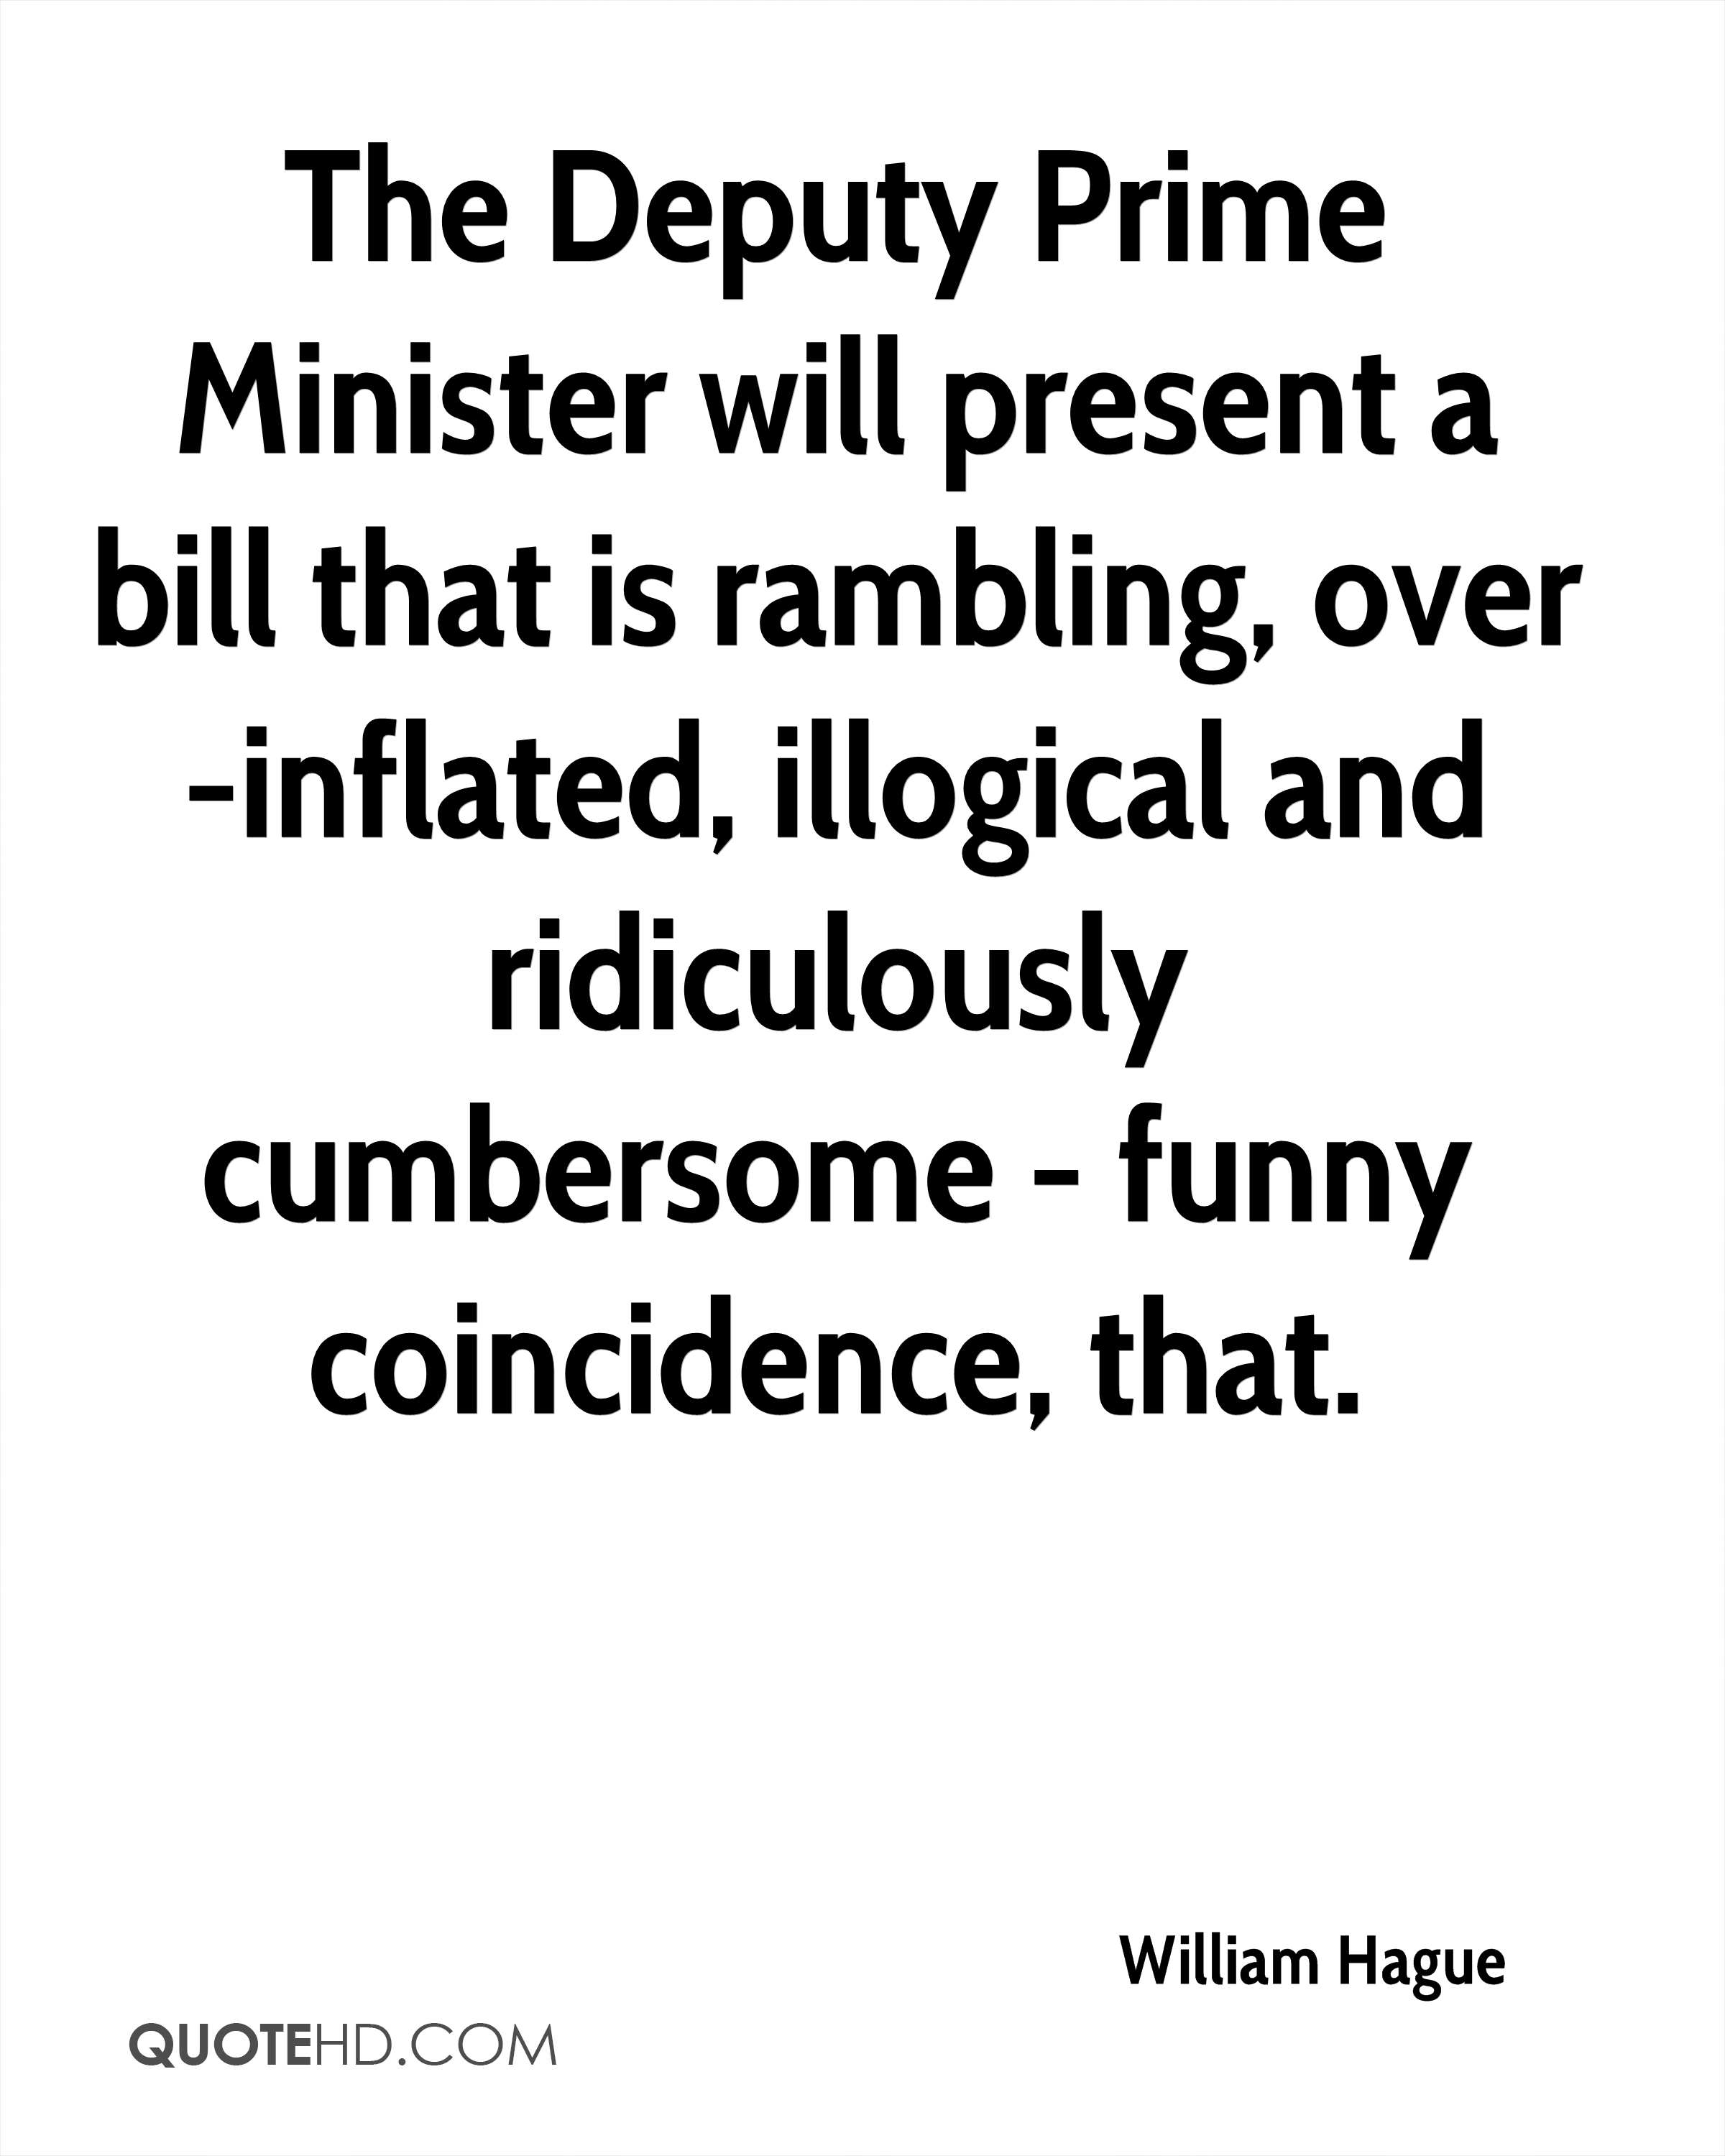 The Deputy Prime Minister will present a bill that is rambling, over-inflated, illogical and ridiculously cumbersome - funny coincidence, that.